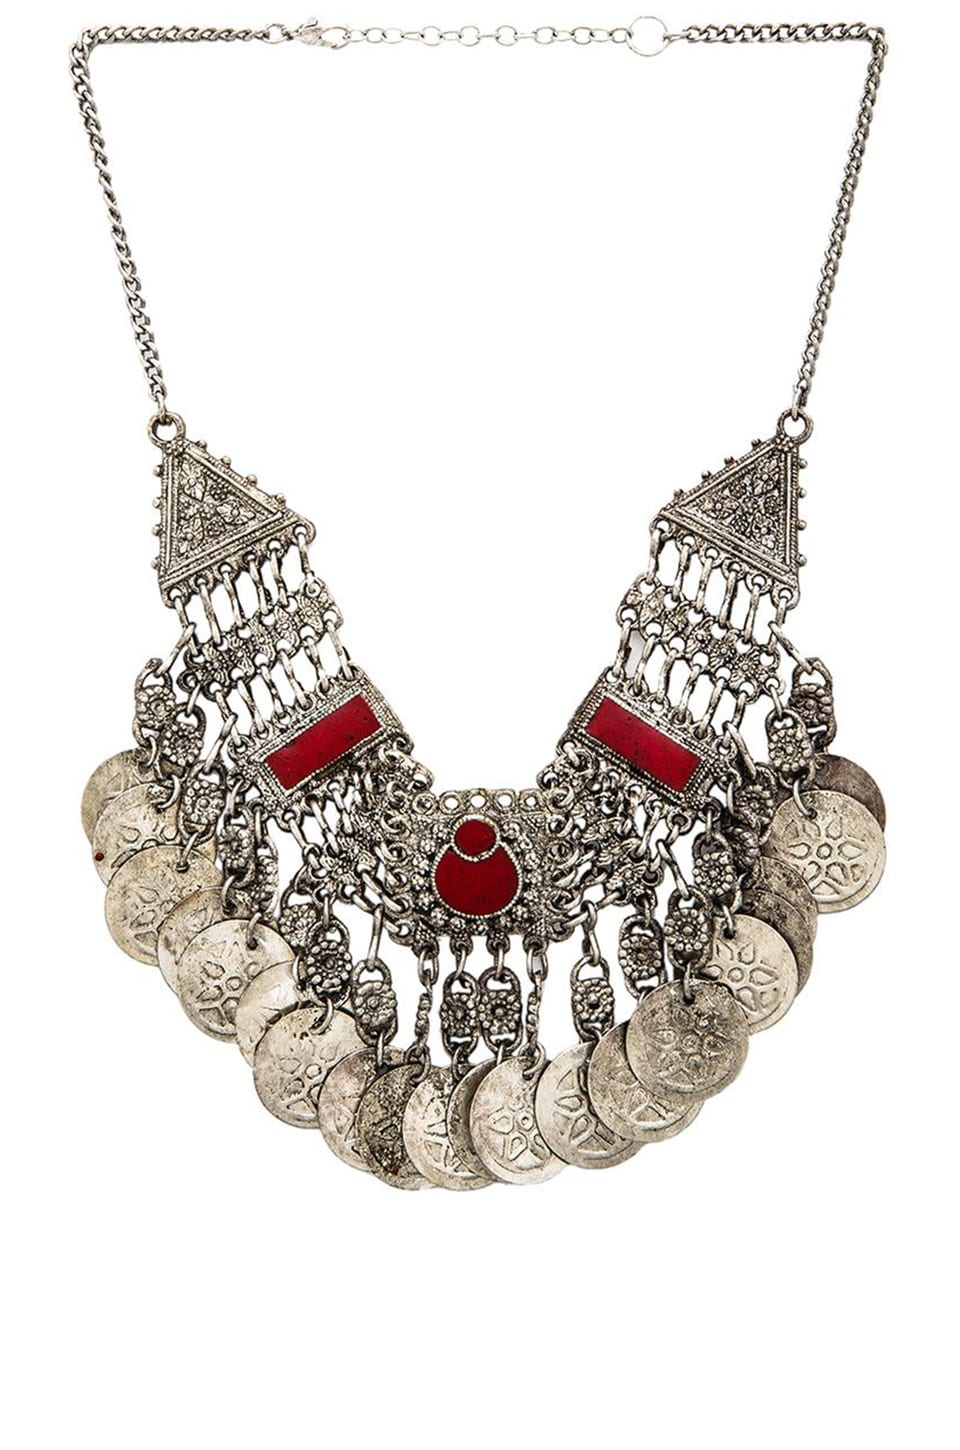 Raga Coin Chain Necklace in Red